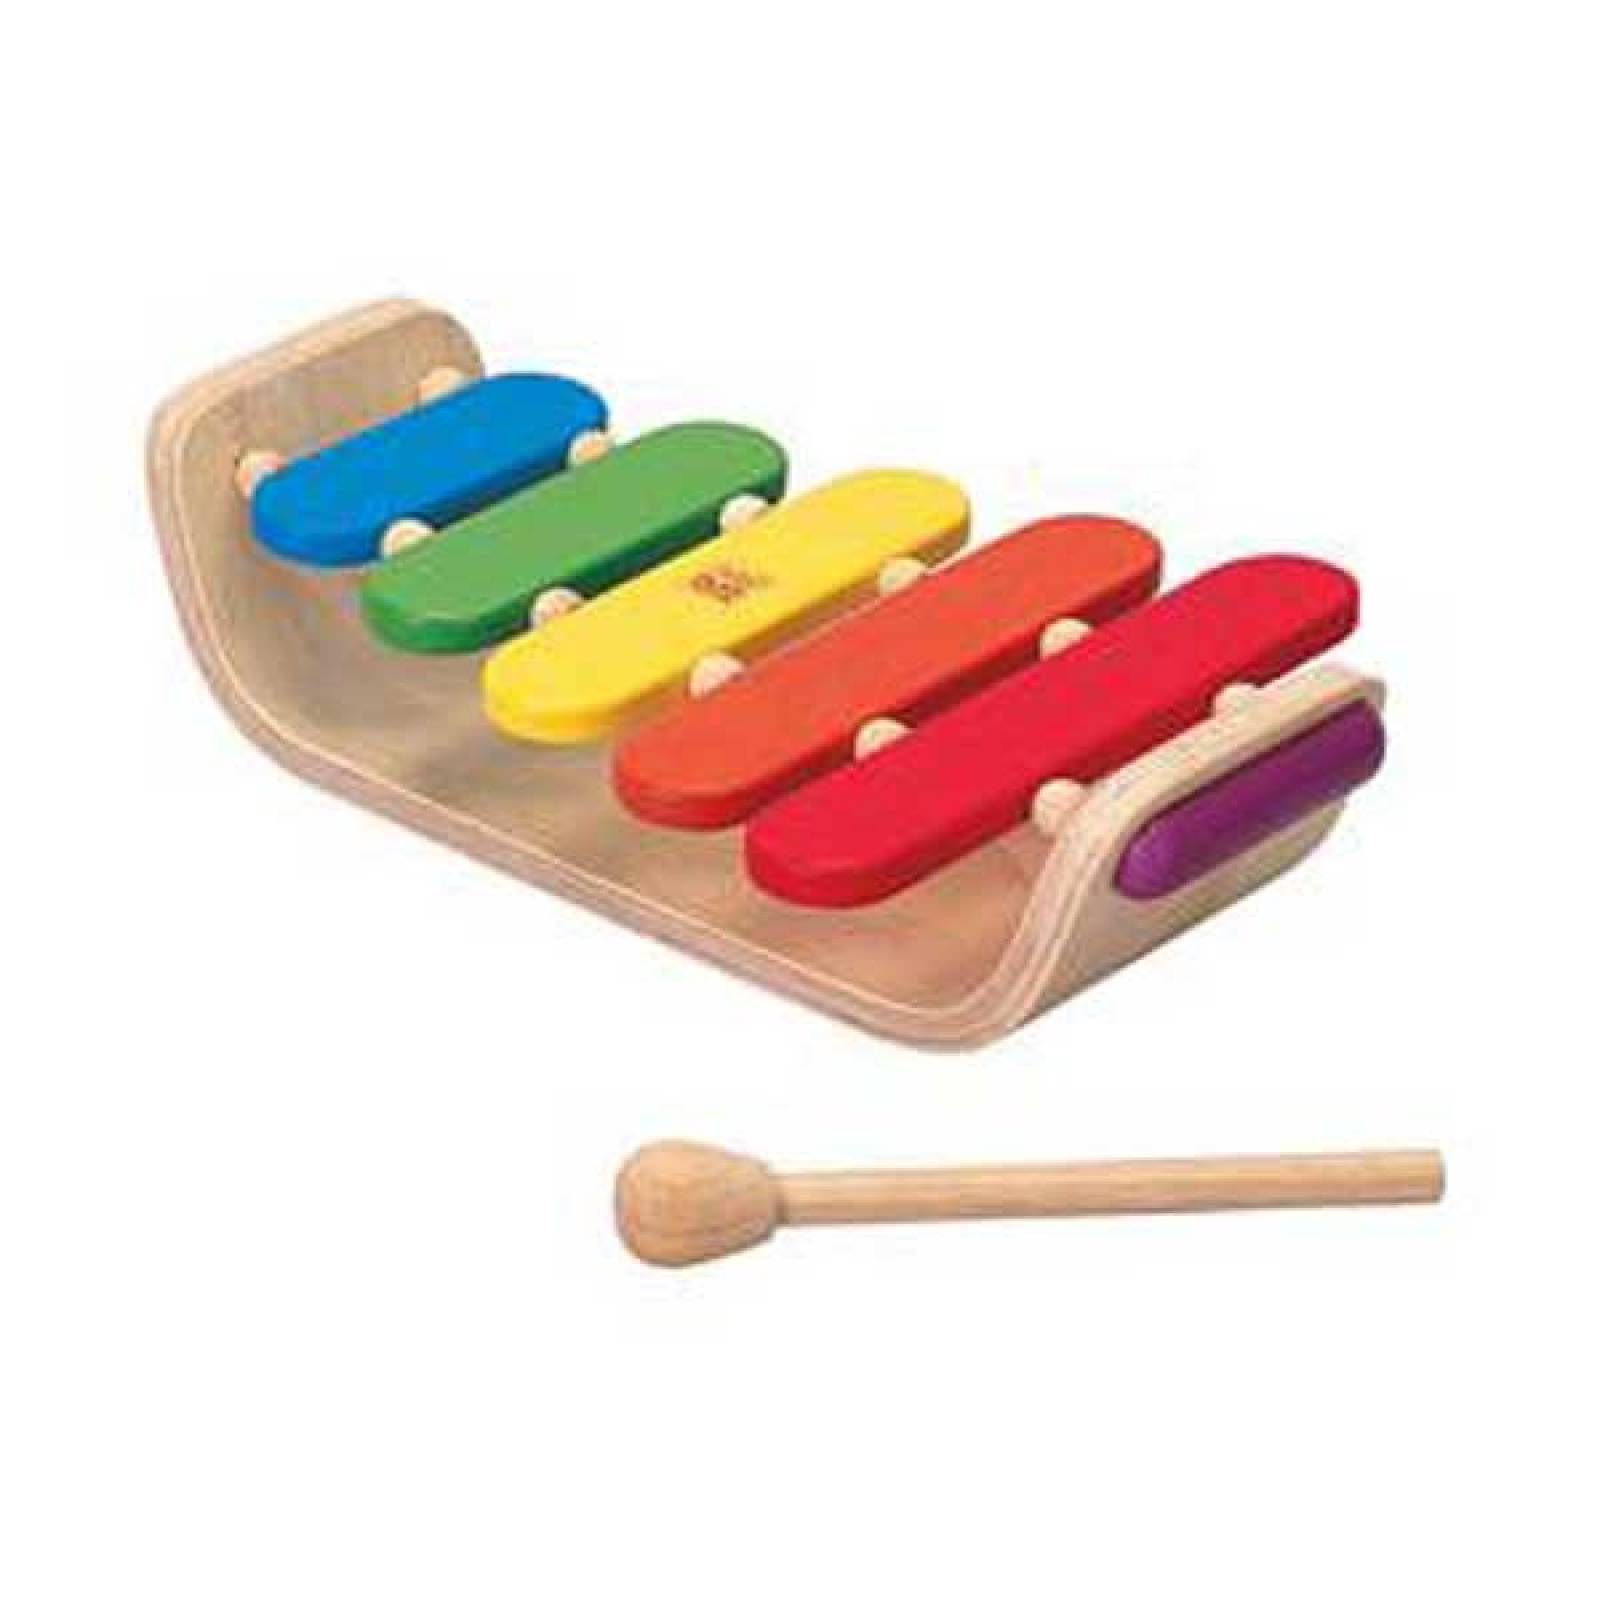 Oval Xylophone by Plan Toys 1yr+